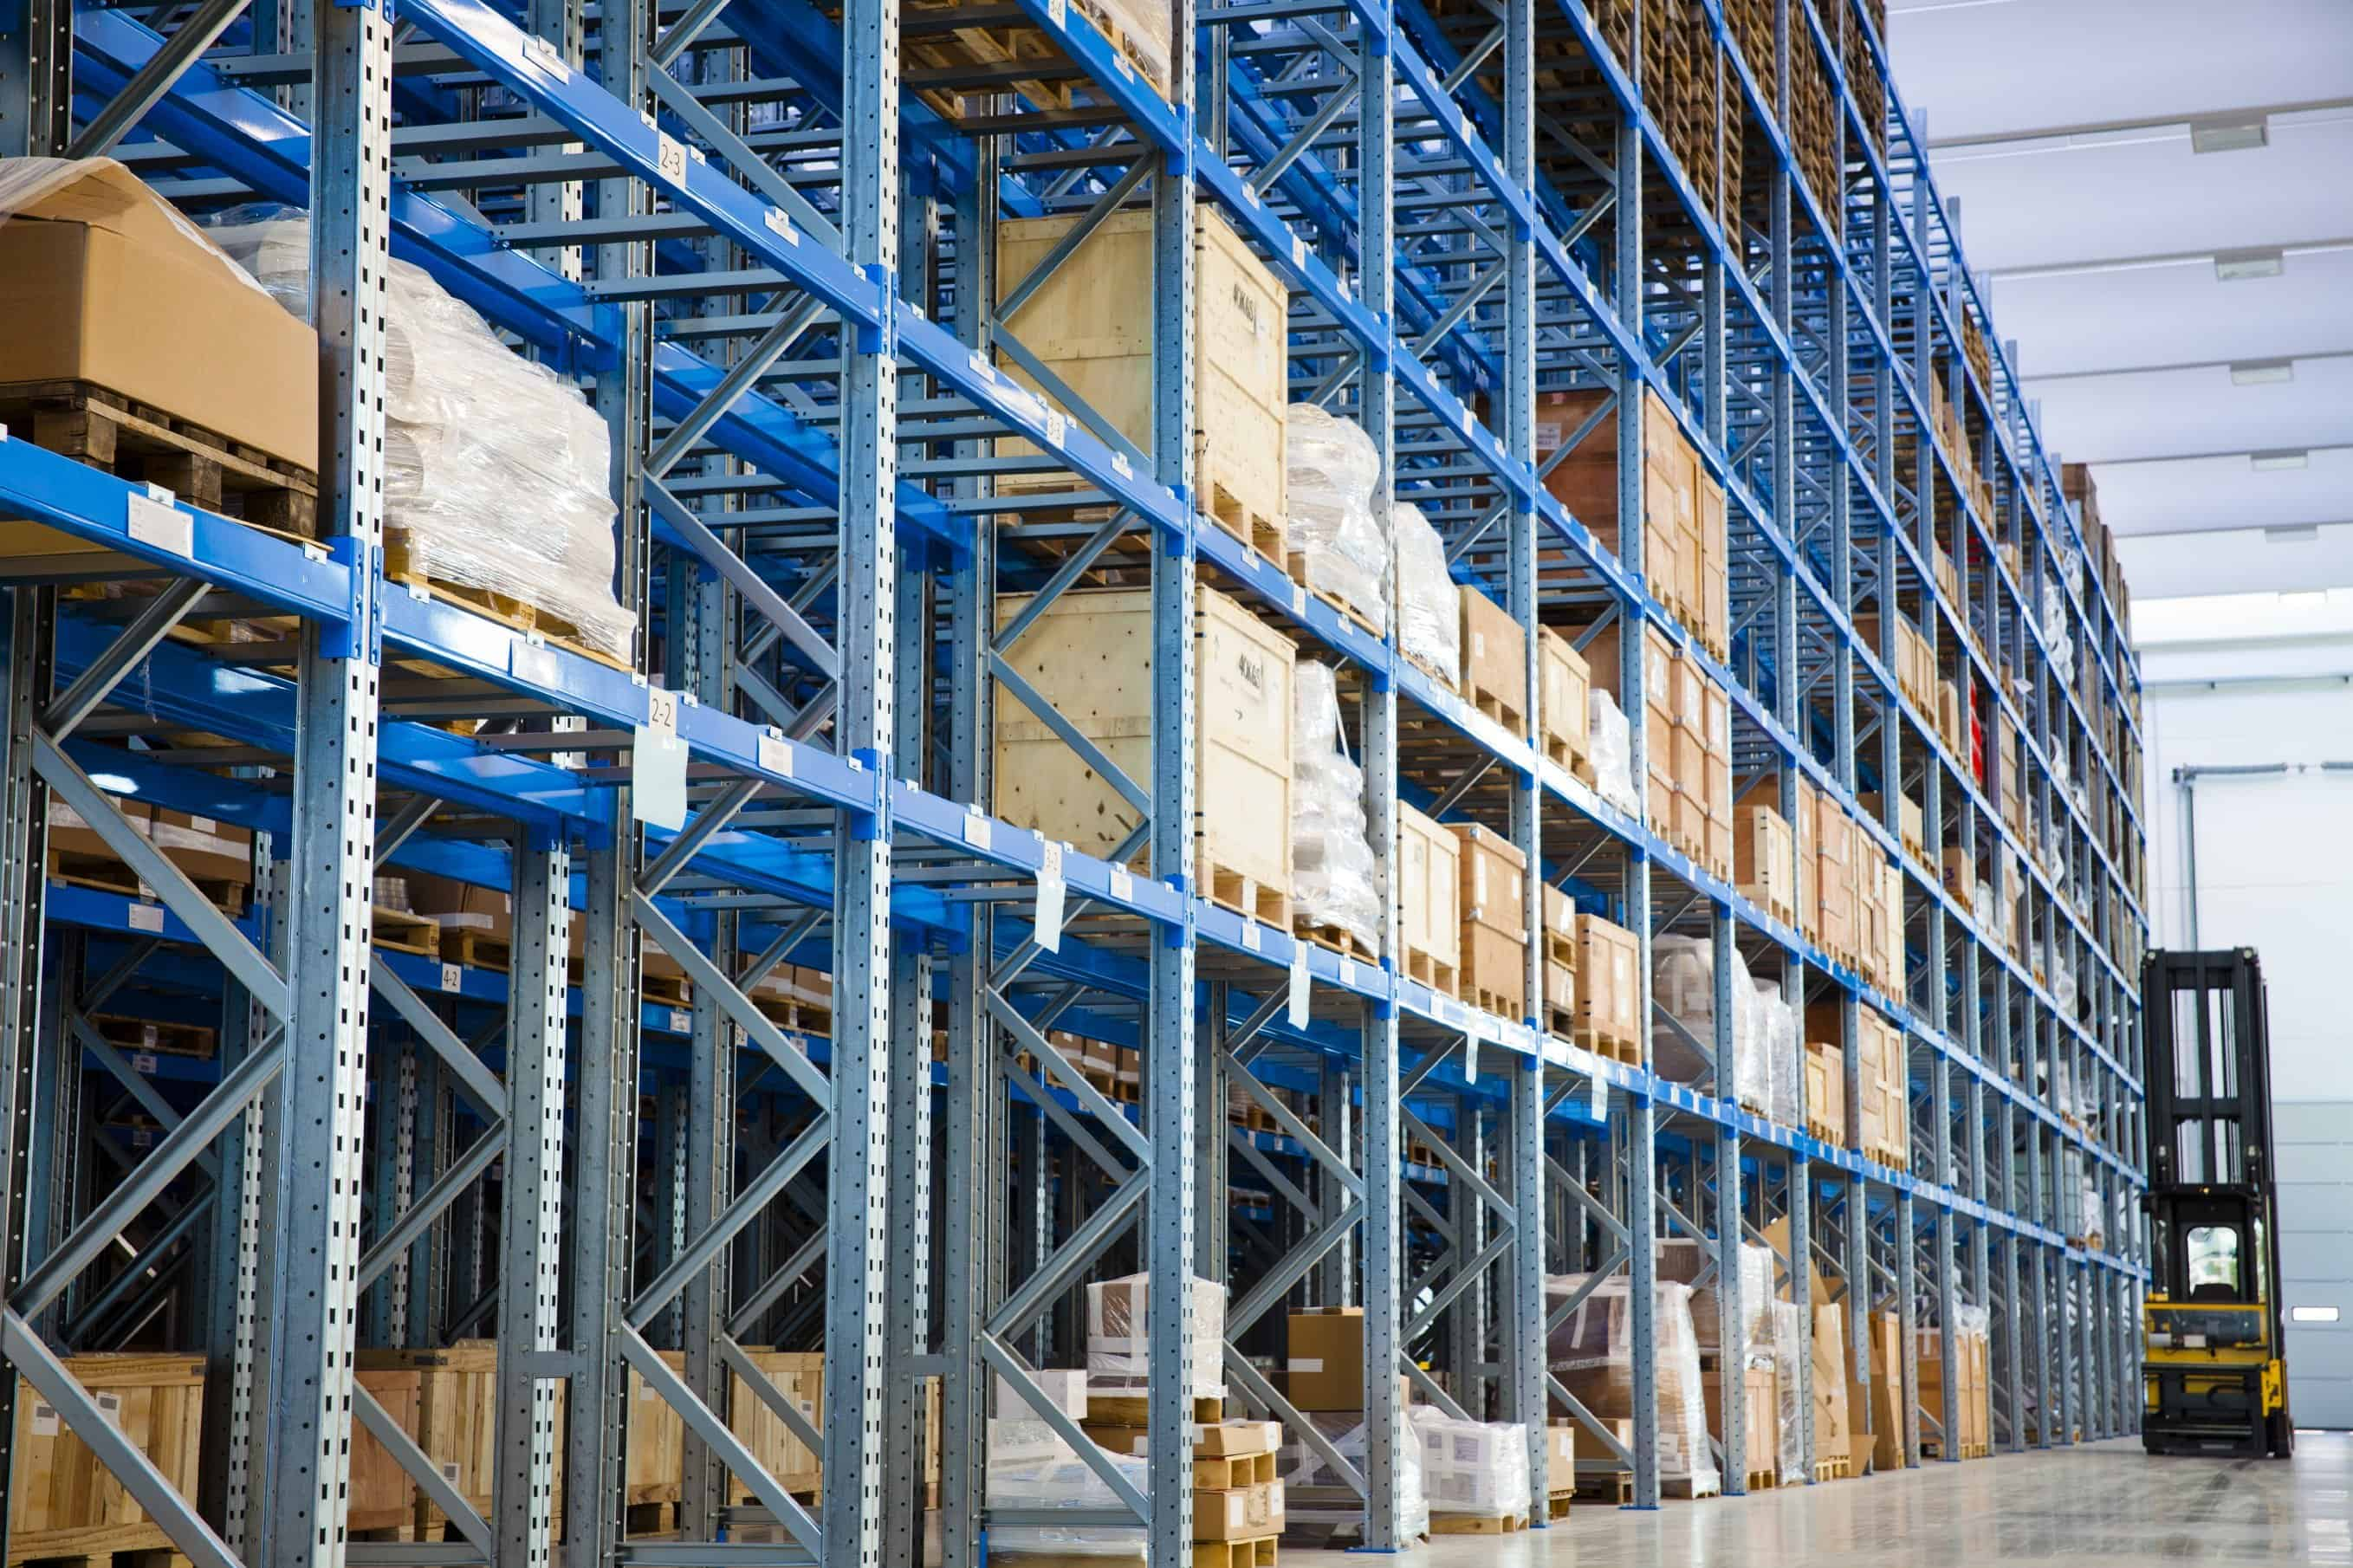 How to Implement Lean Warehousing 5S Practices | LEGACY